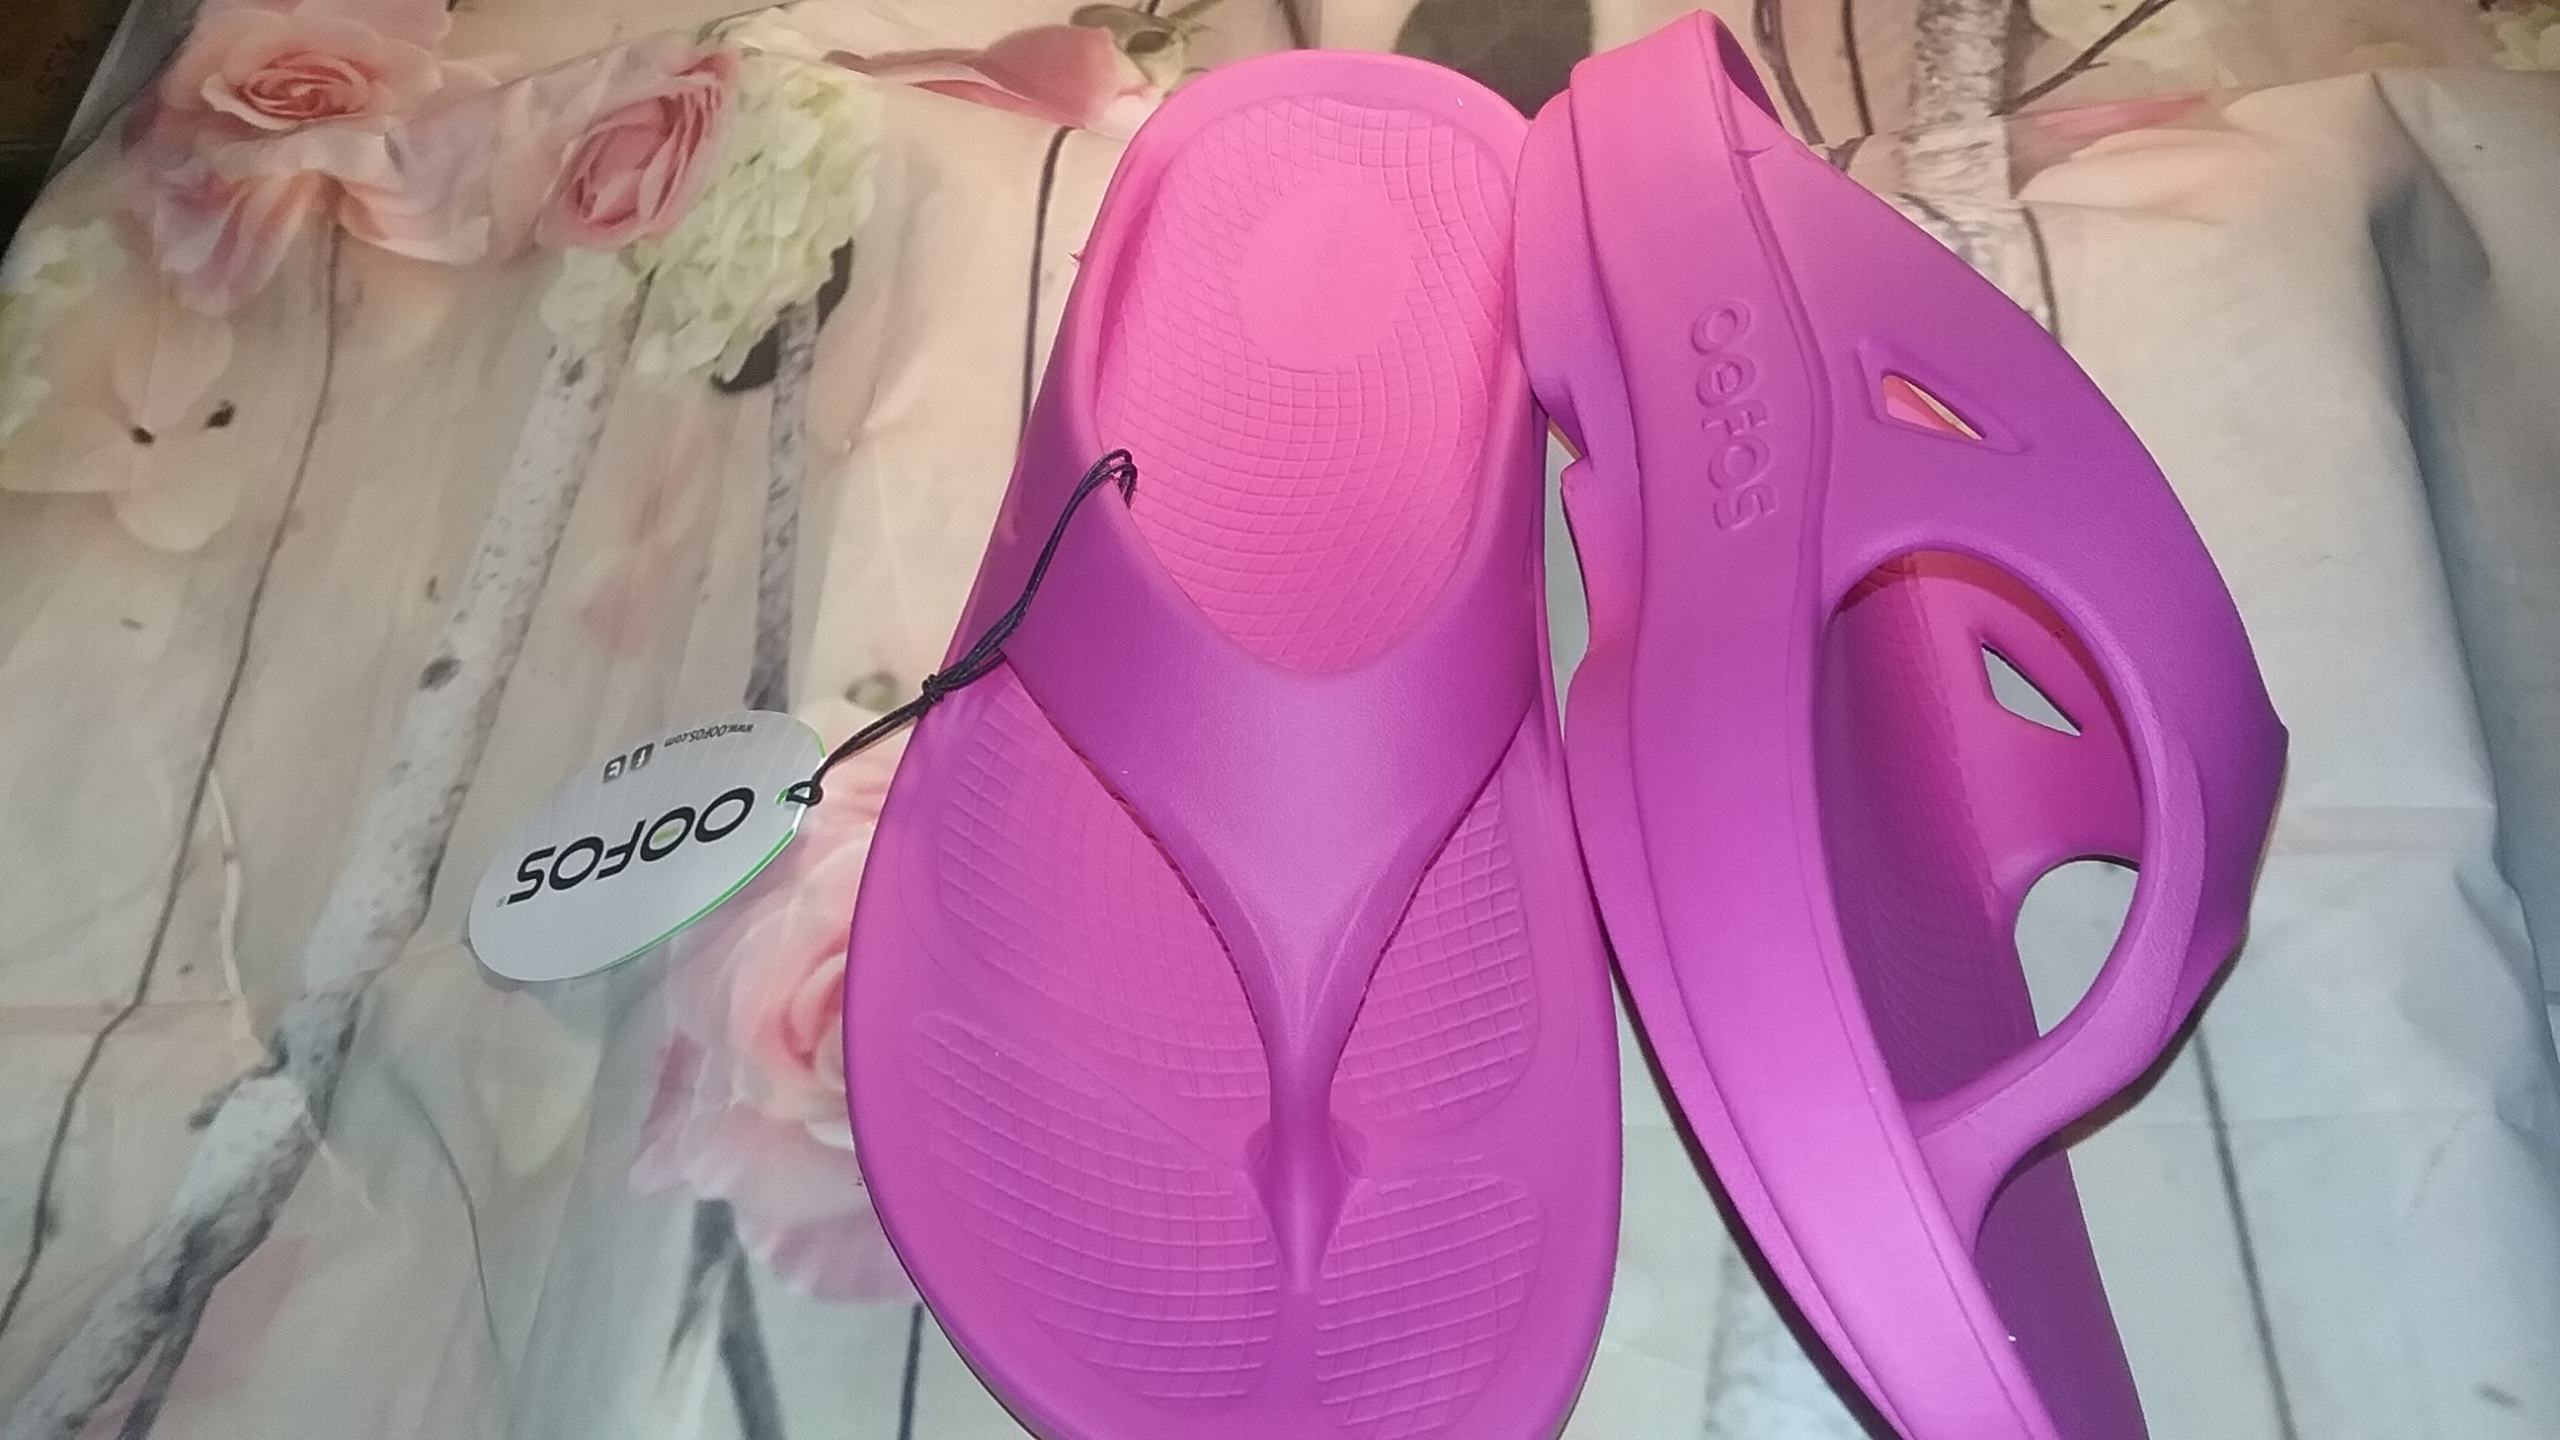 2017 Valentines Day Guide Featuring OOFOS Women's OOriginal Sandal!